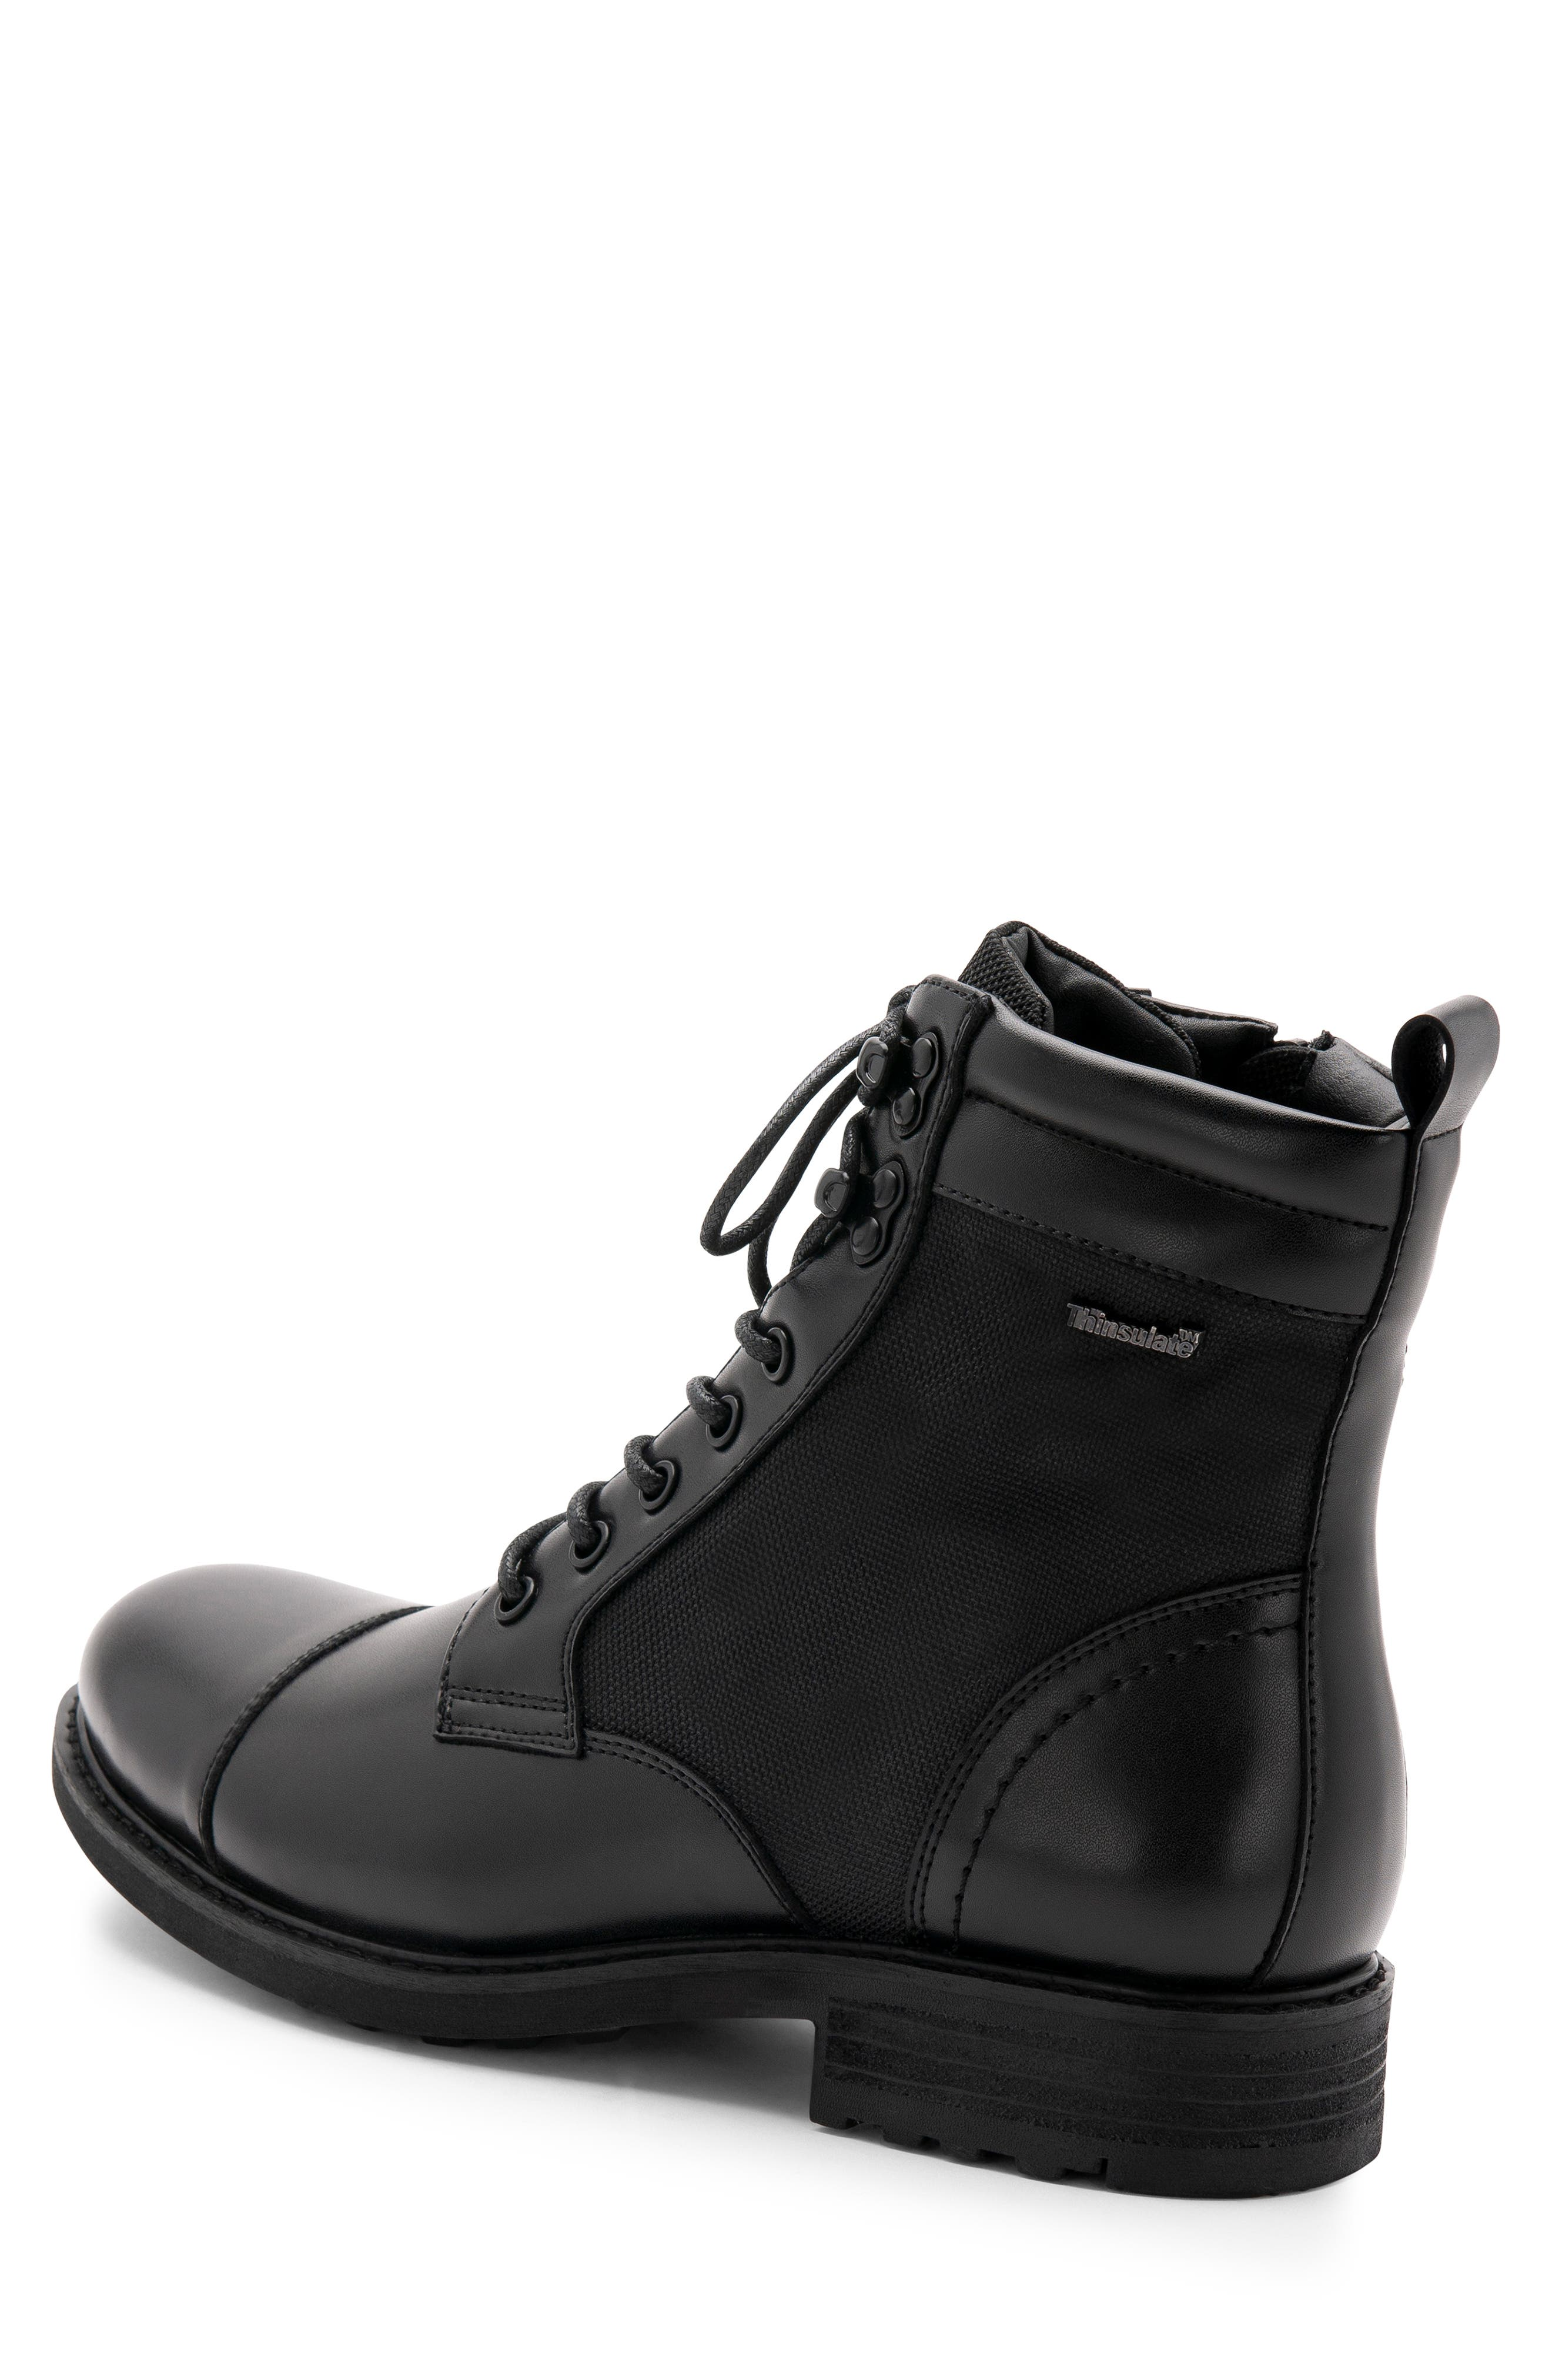 Paxton Waterproof Cap Toe Boot,                             Alternate thumbnail 2, color,                             BLACK LEATHER